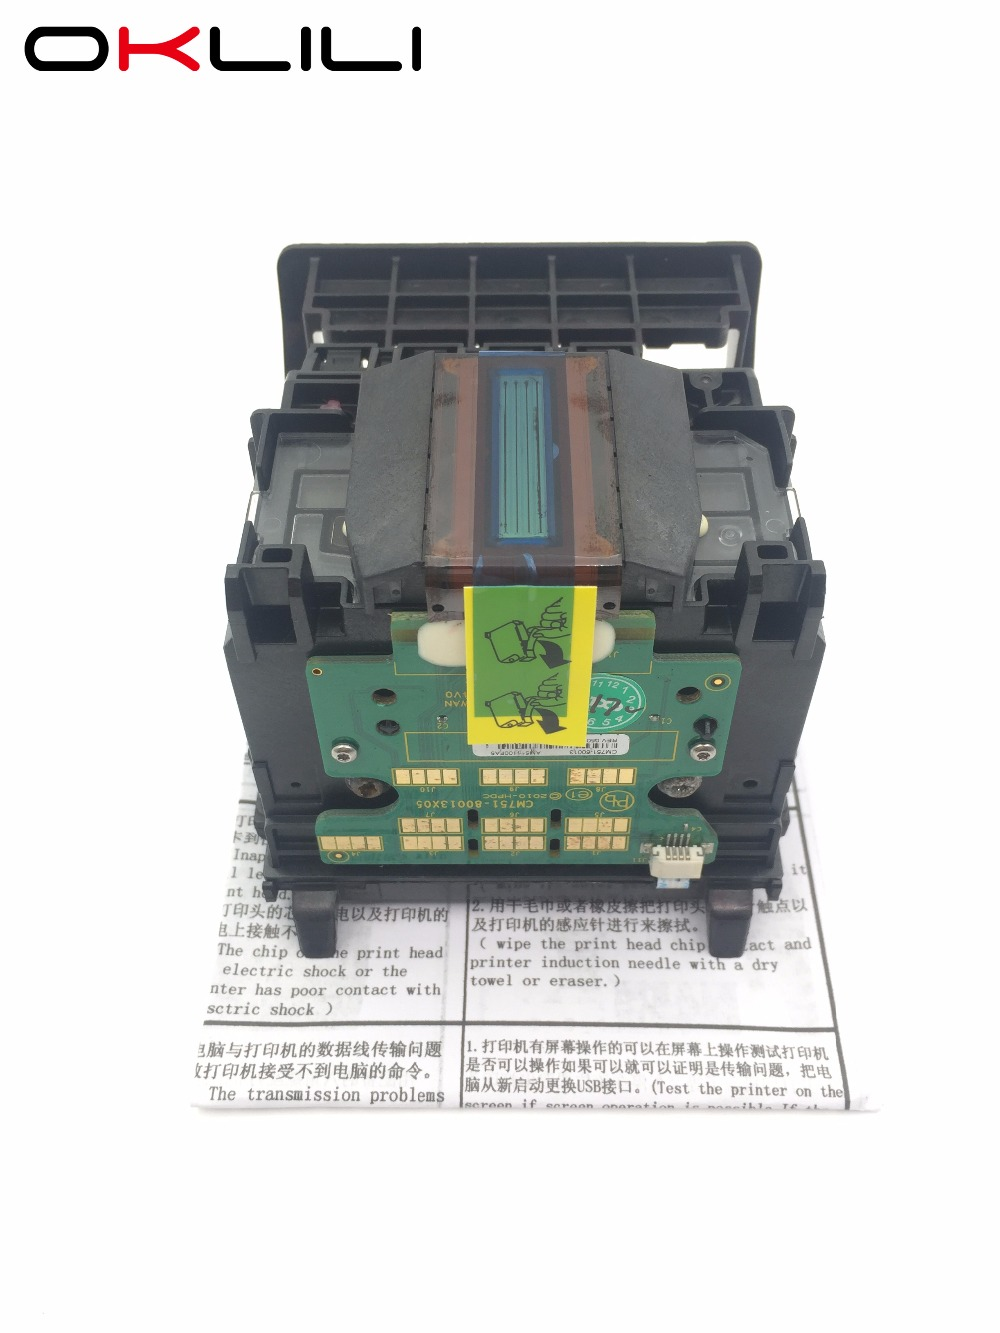 CM751-80013A 950 951 950XL 951XL Printhead Print head for HP Pro 8100 8600 Plus 8610 8620 8625 8630 8700 Pro 251DW 251 276 276DW test well 950 951 95%new original printhead print head for hp 8600 8100 8620 8630 8640 8660 251dw 276 printer head for hp 950